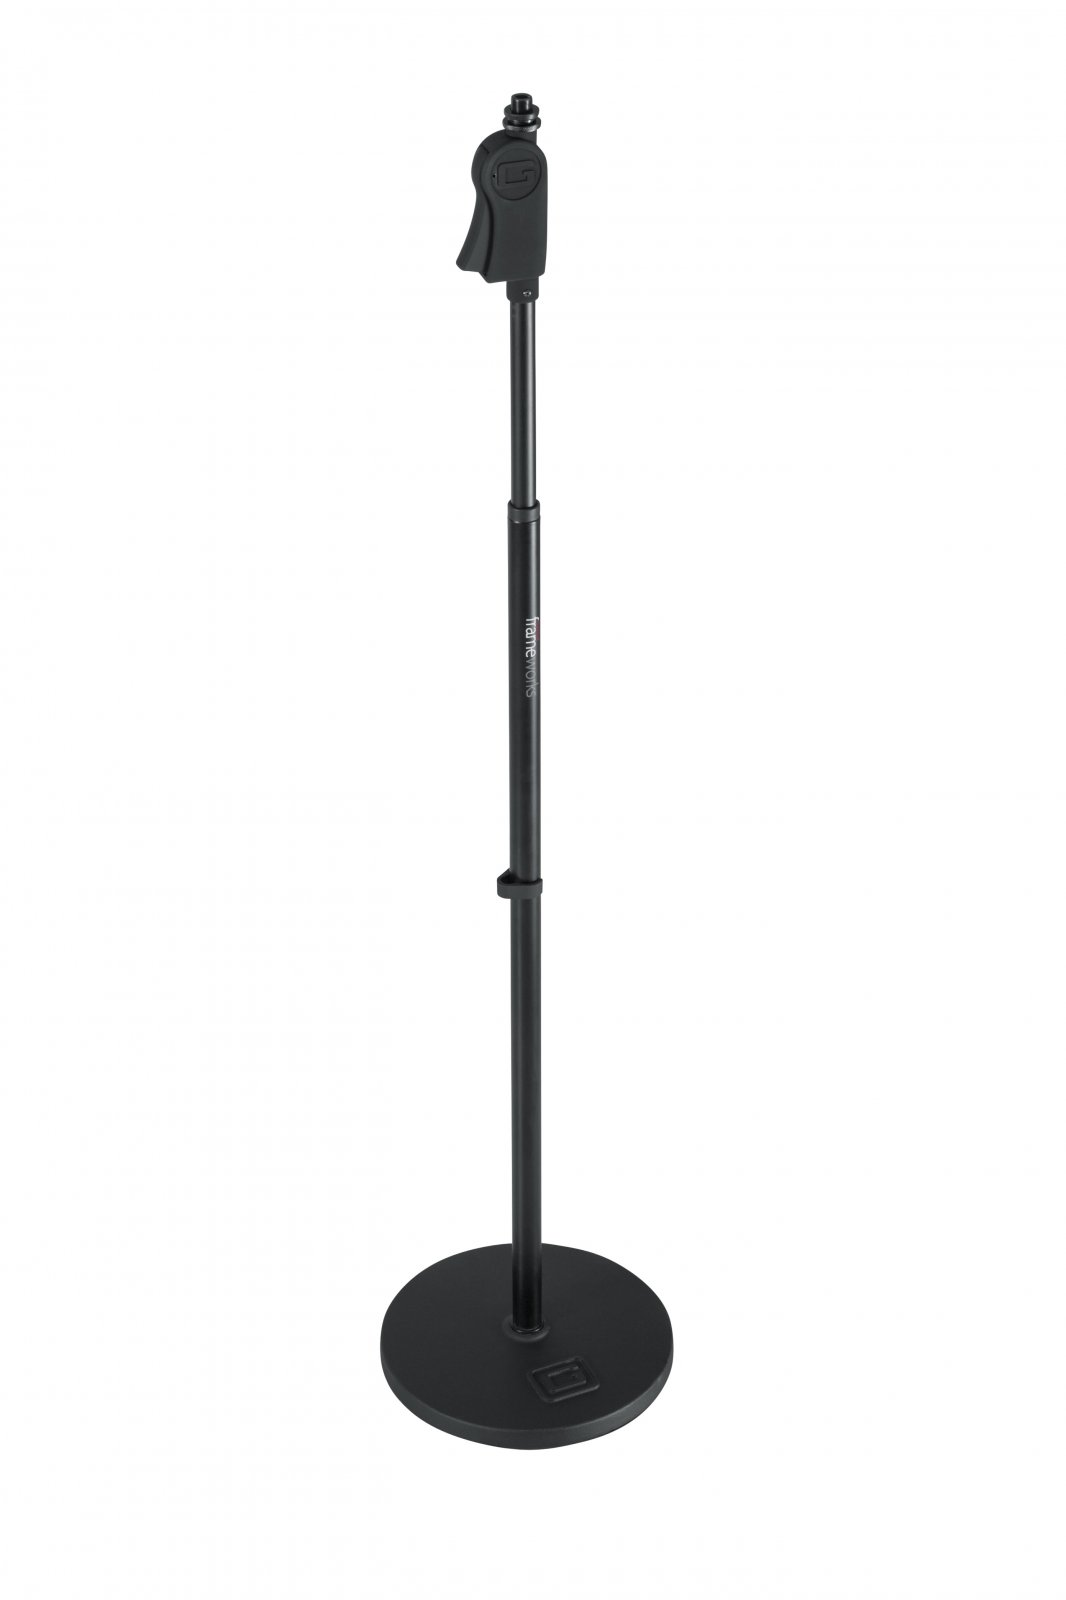 Gator Cases Frameworks 10 Round Base Microphone Stand With Twist Clutch